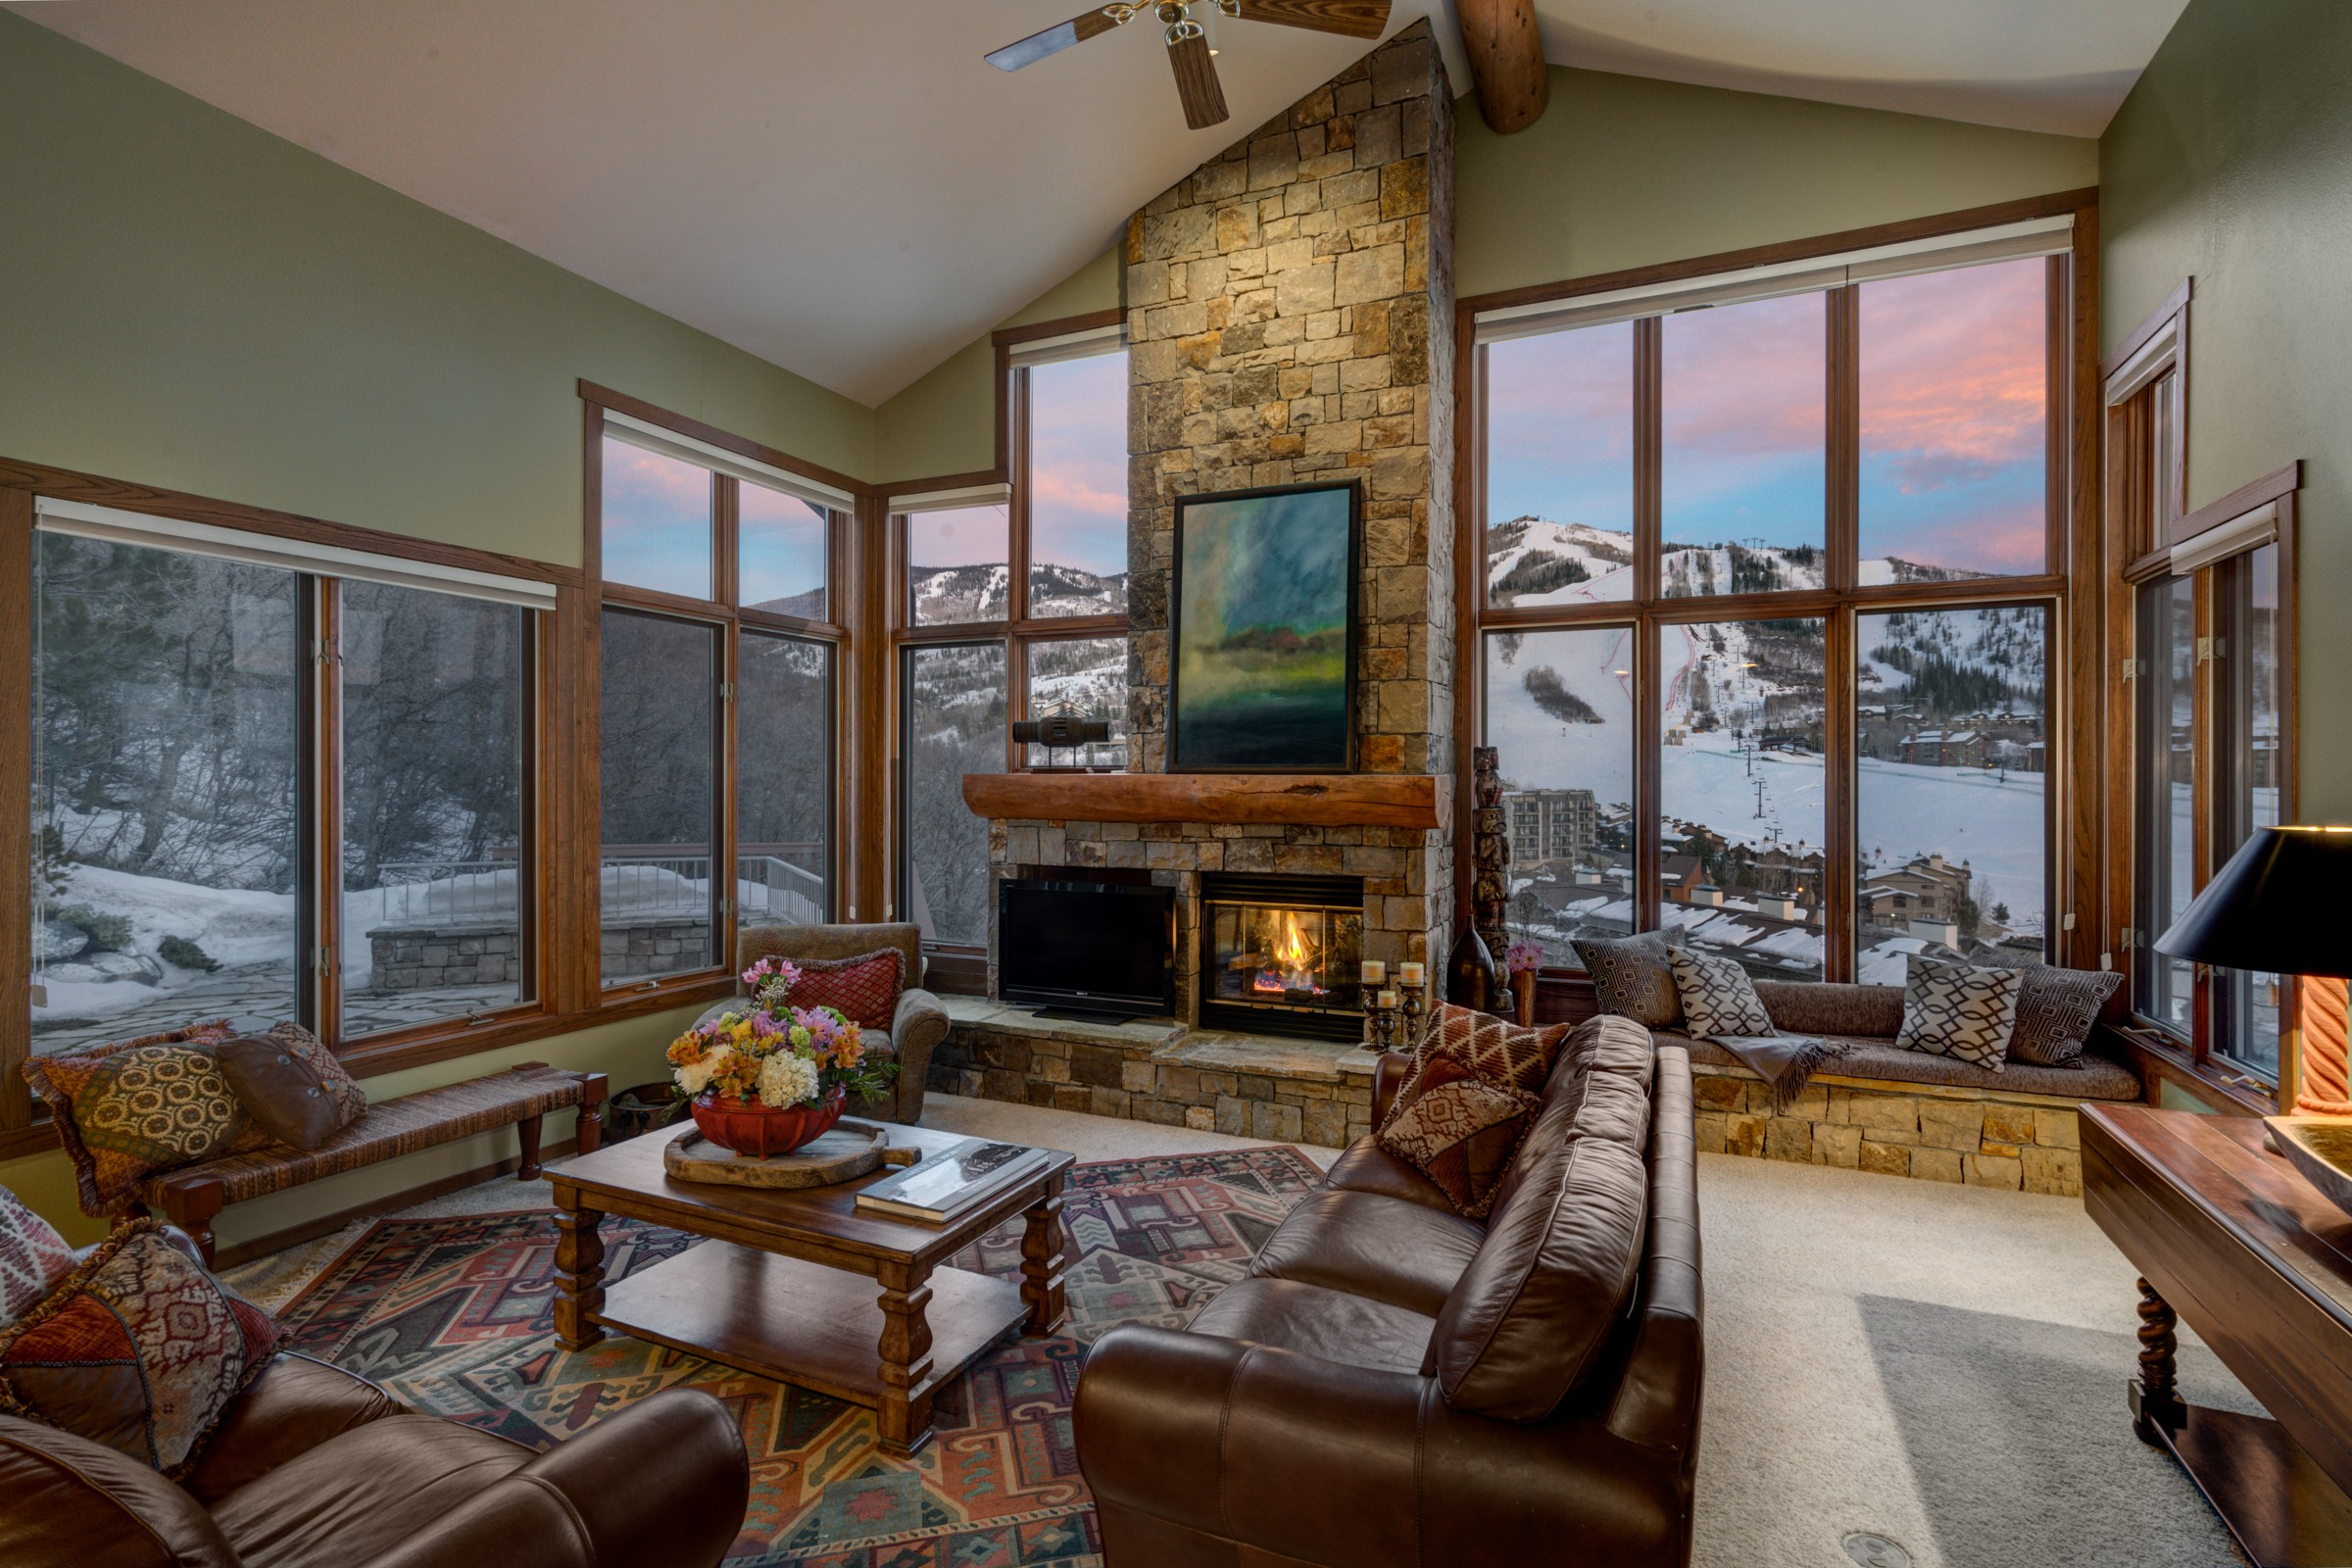 THE SUNDAY HOUSE – STEAMBOAT SPRINGS SKI PROPERTY LISTED FOR SALE